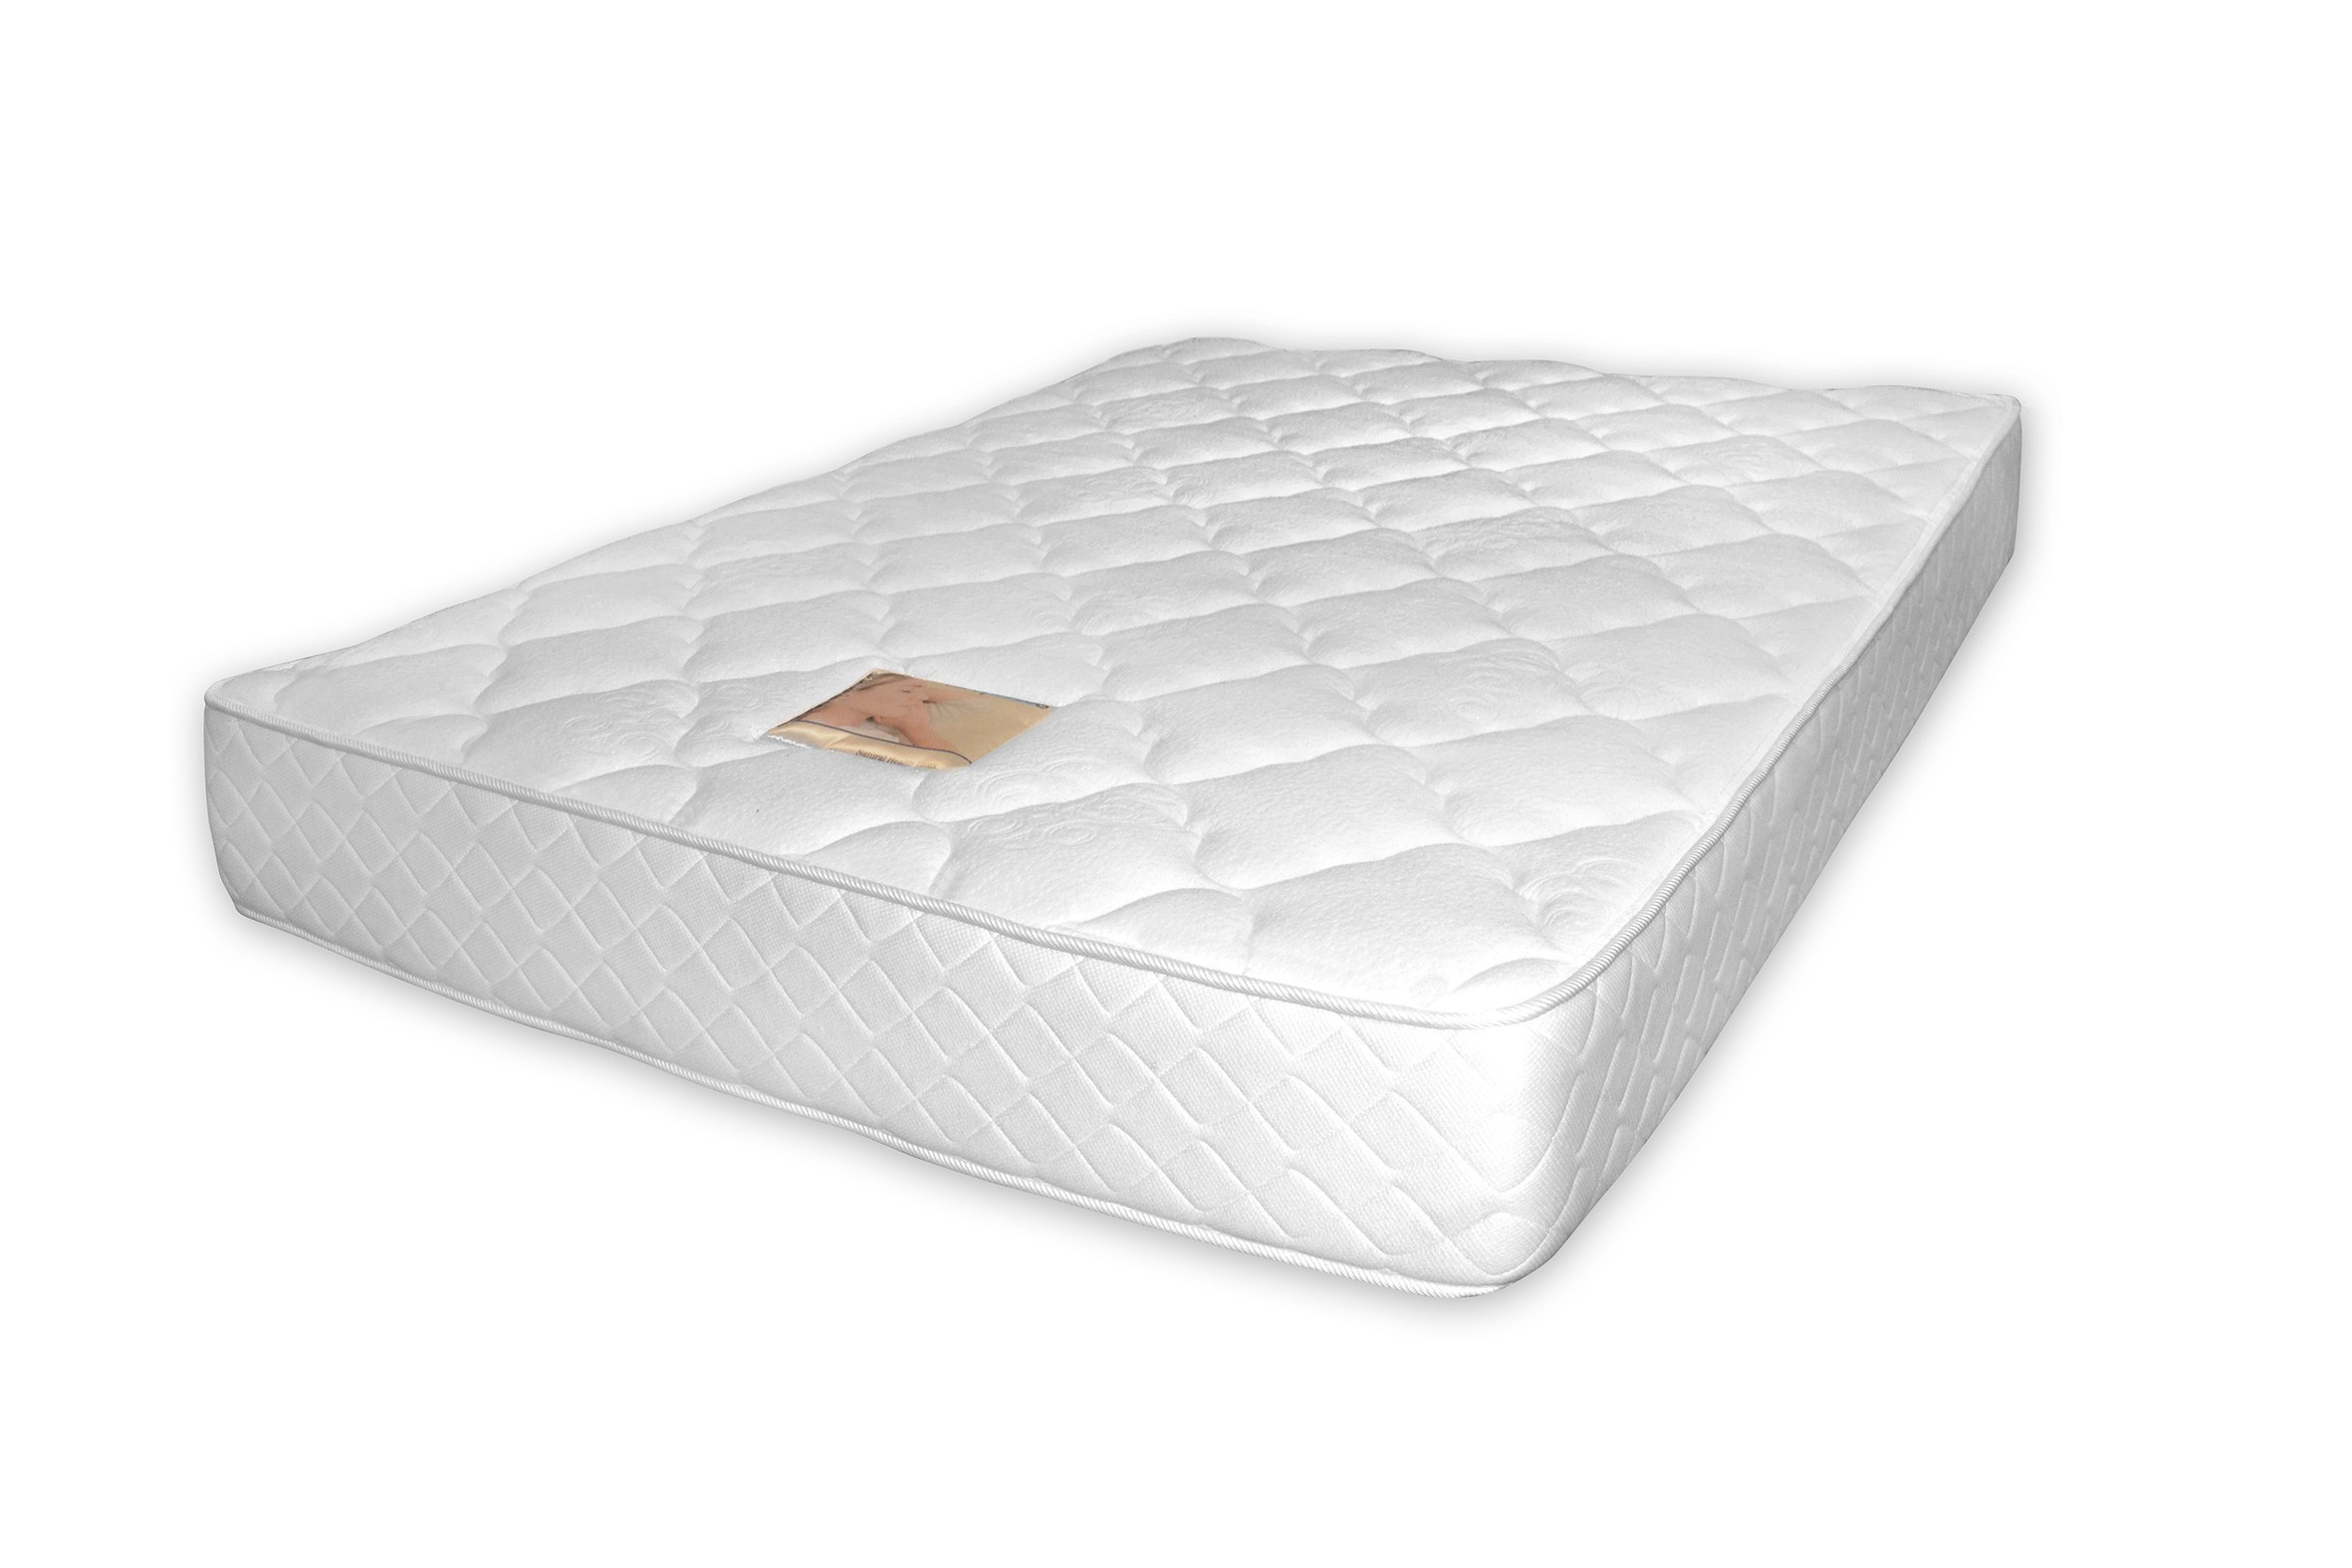 bedrooms side products largesize latex bedroom more mattresses seattle firm wallingford bed mattress plush